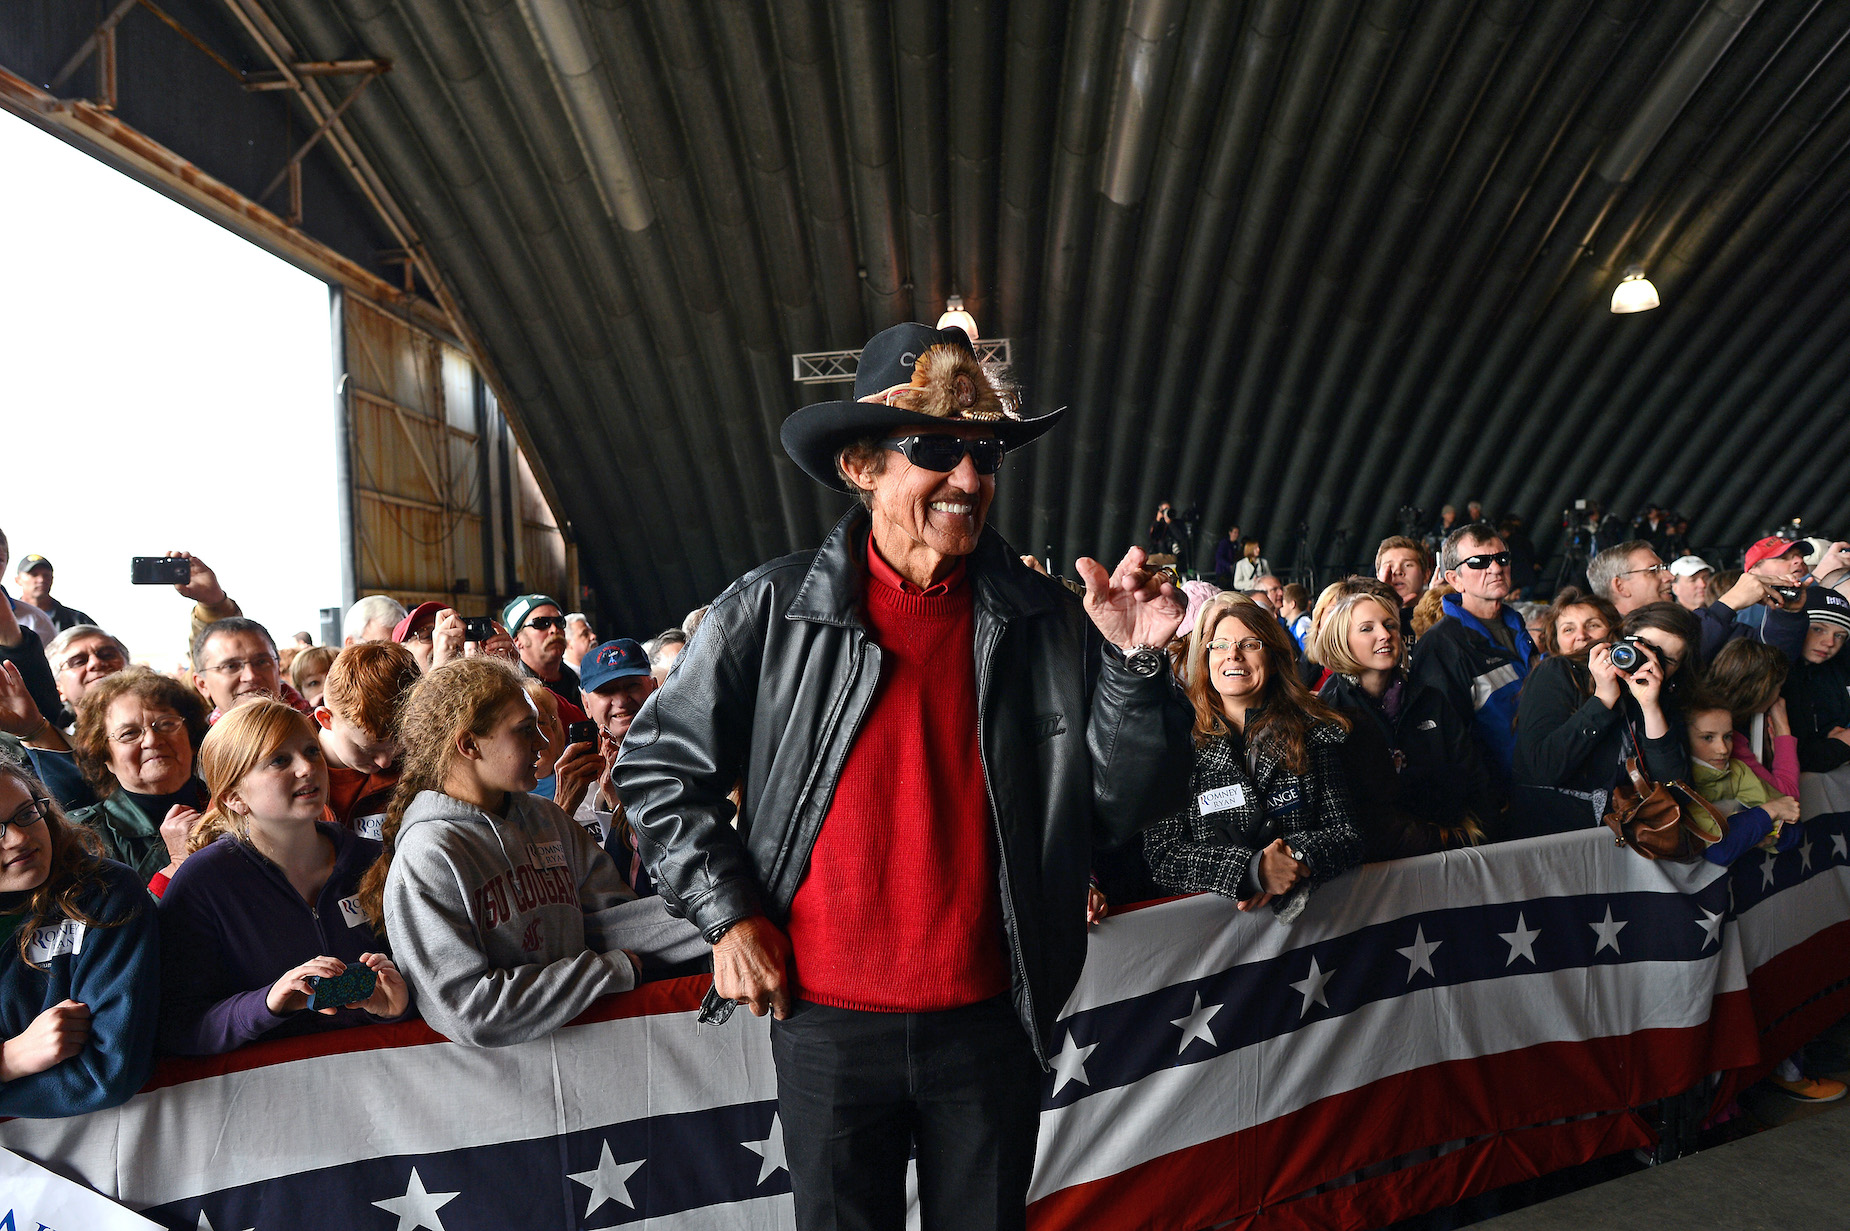 Richard Petty Won 200 Nascar Races but Crashed and Burned When He Ran for Political Office